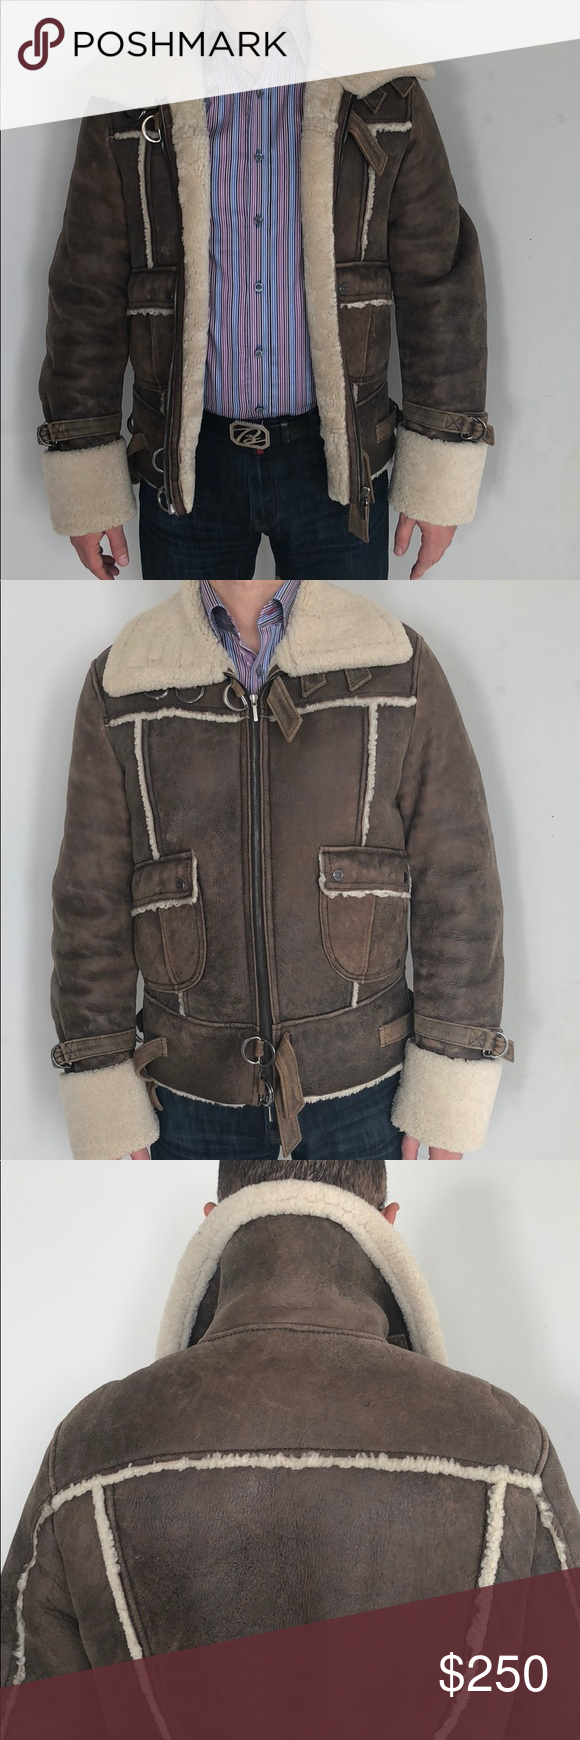 Ice J Iceberg Sheepskin Winter Jacket In Wonderful Condition Fits Great On Medium 48 And Large 50 Sizes Purchased F Winter Jackets Clothes Design Jackets [ 1740 x 580 Pixel ]